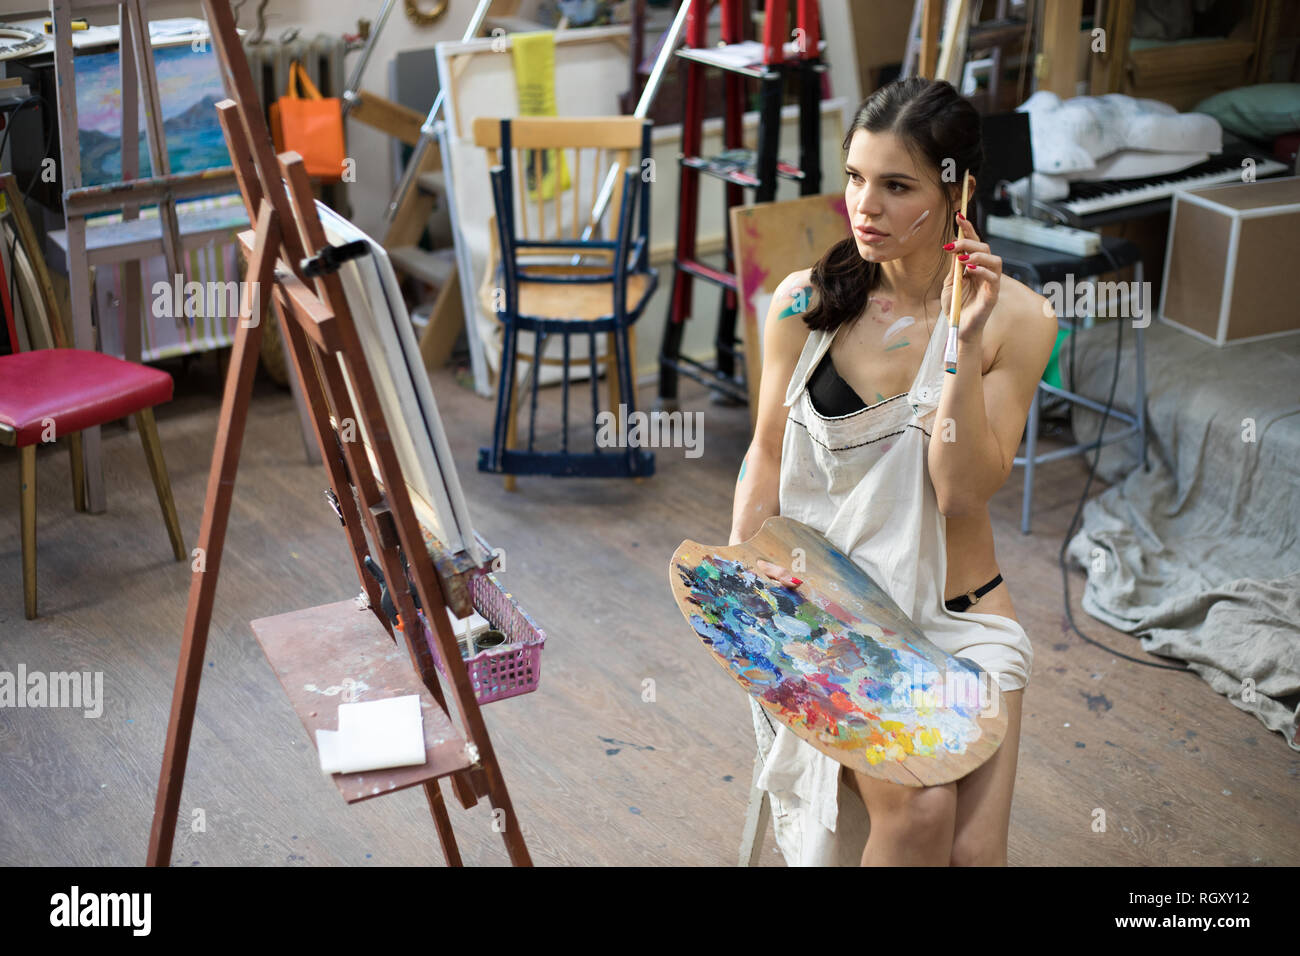 Woman Artist Painting Picture In Art Studio Female Artist